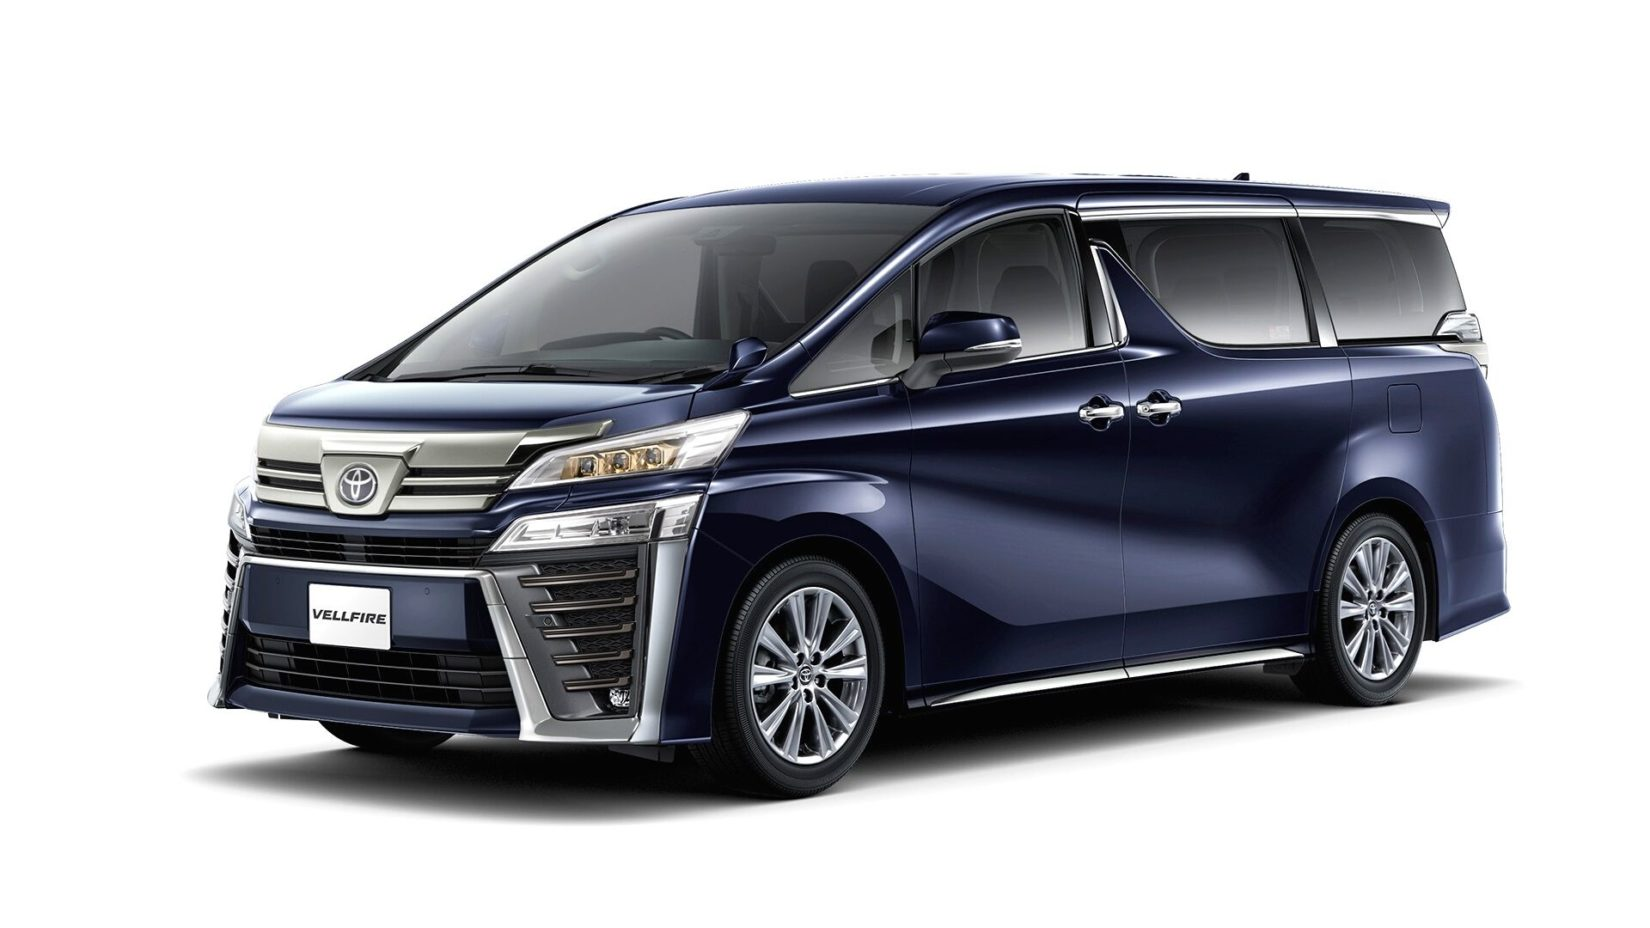 Toyota Vellfire Golden Eyes, Alphard Type Gold Special Editions Unveiled